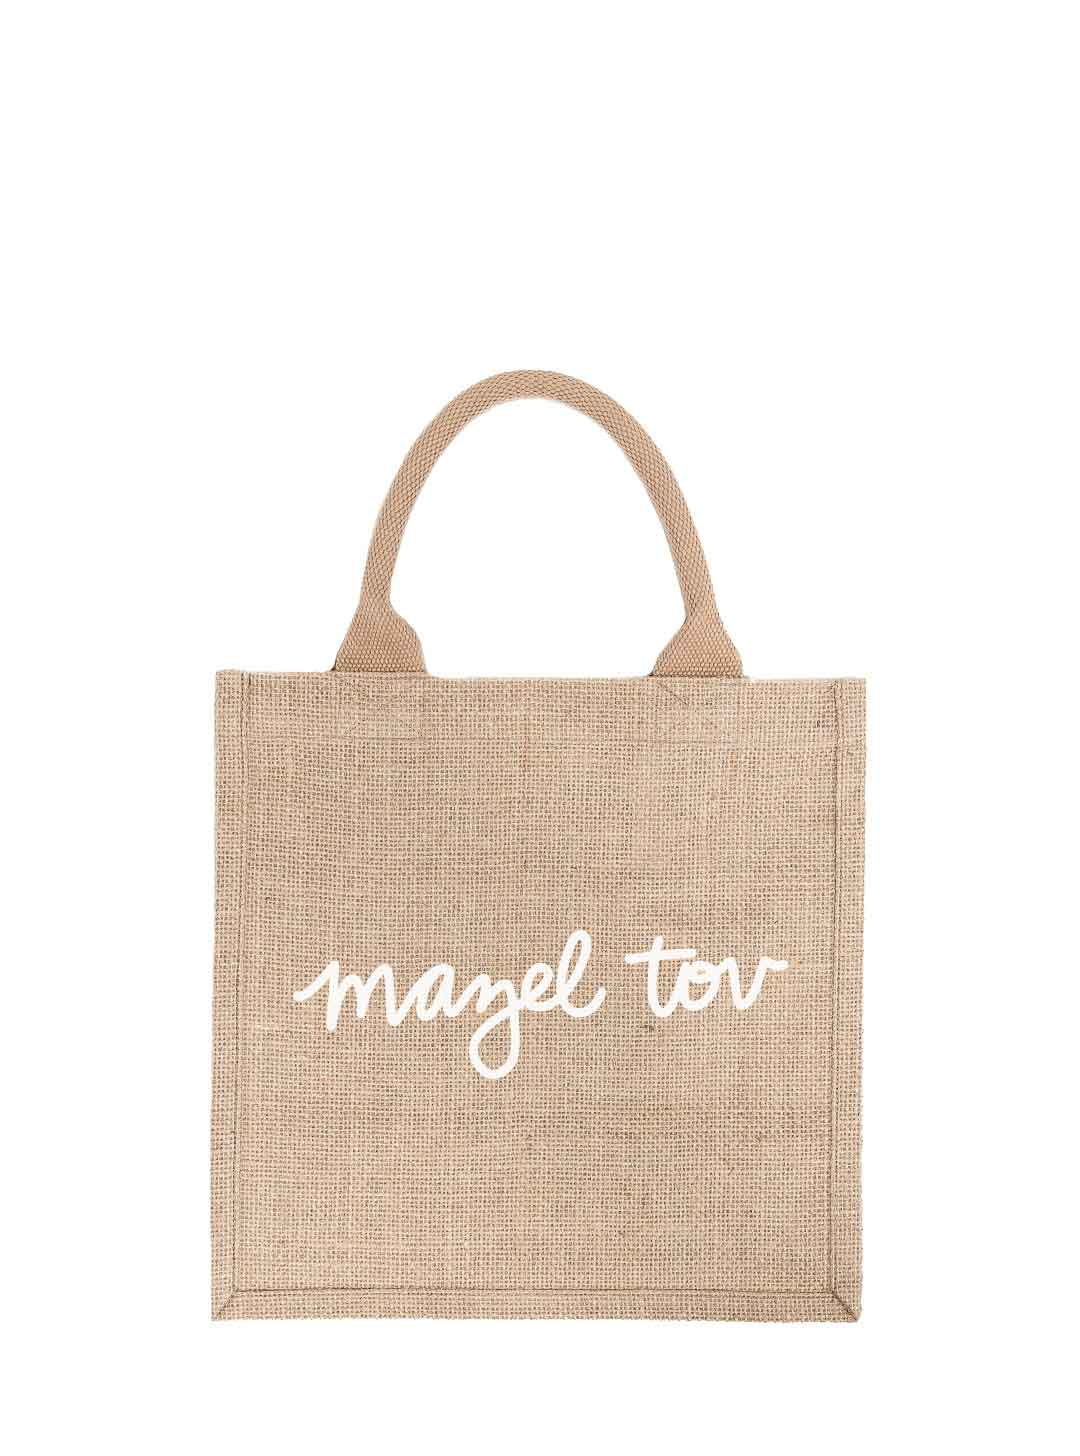 Large Mazel Tov Reusable Gift Tote In White Font | The Little Market